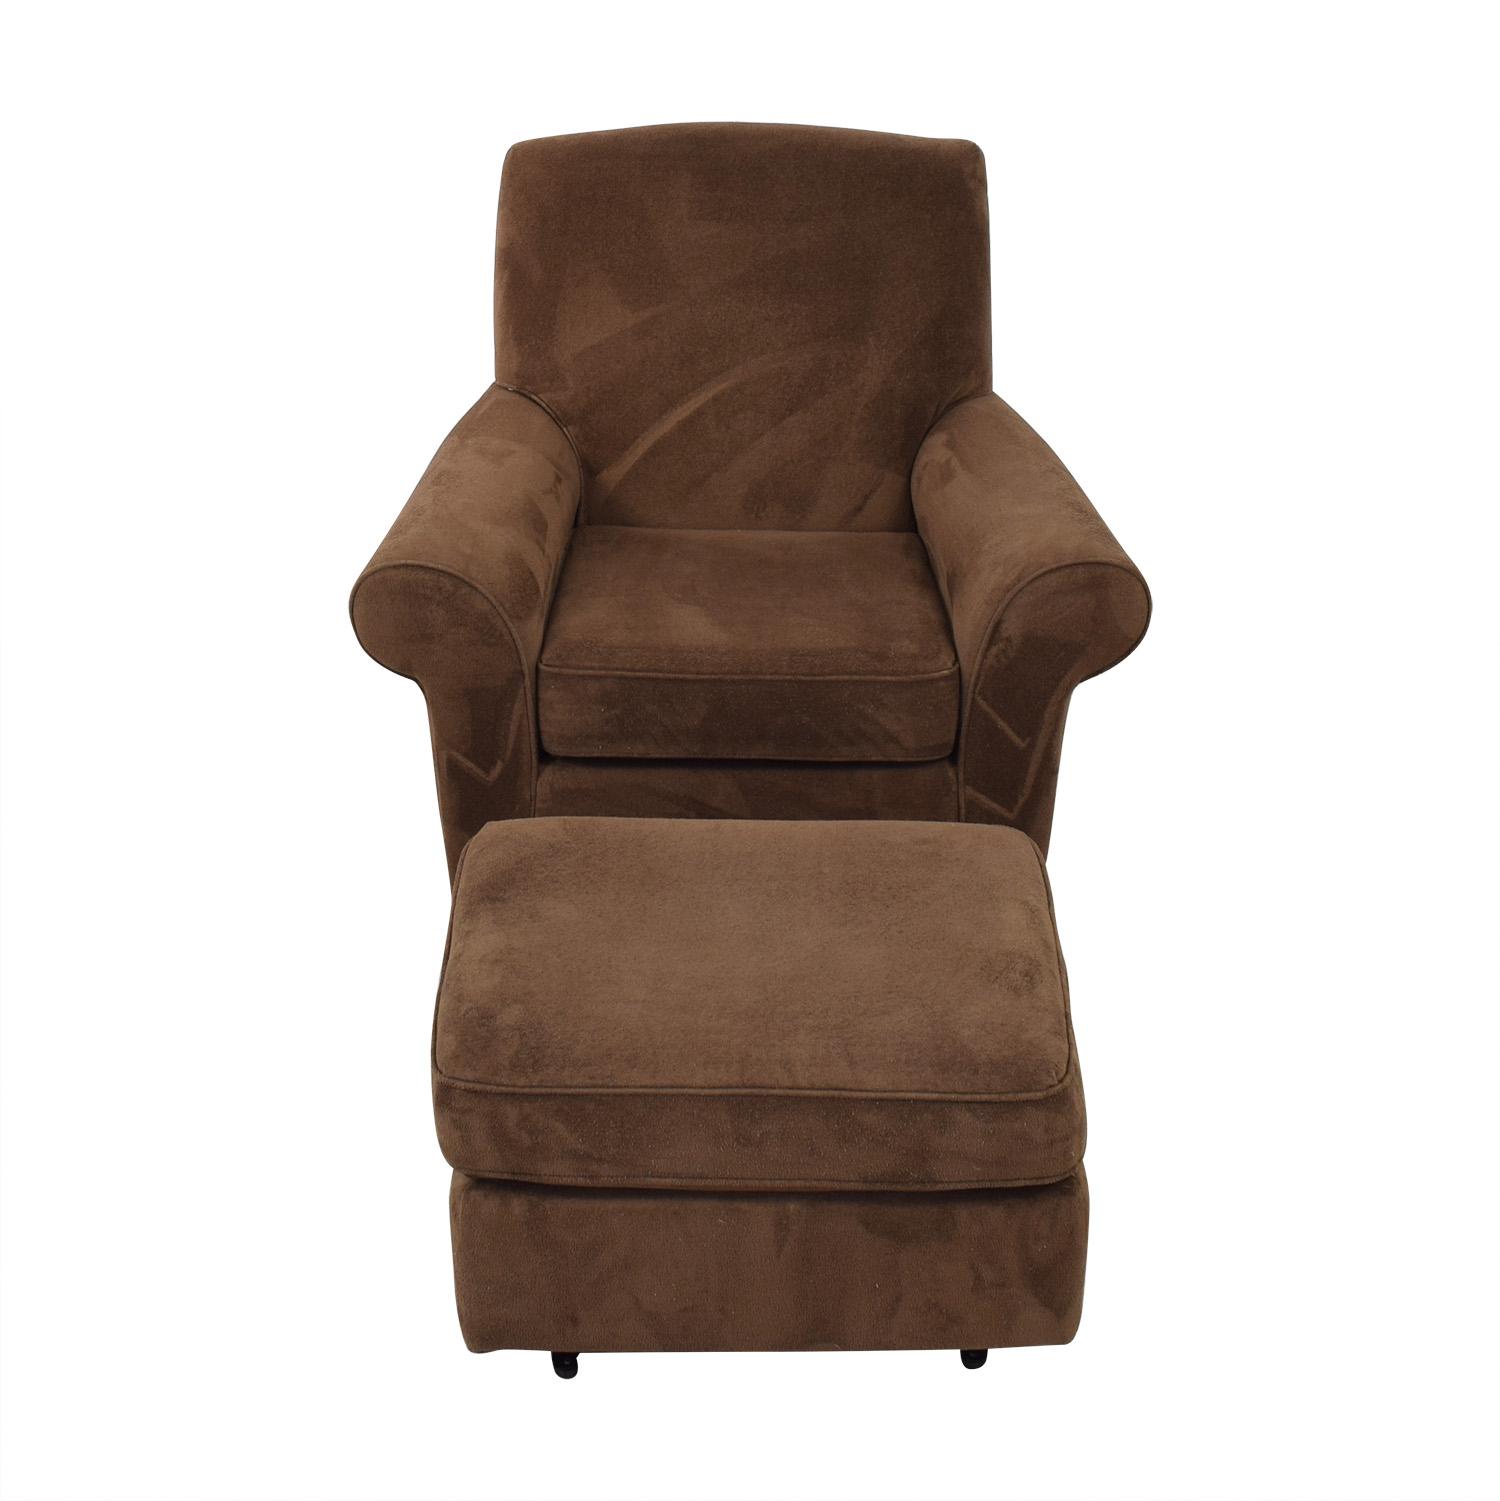 Best Chairs Mandy Swivel Glider and Ottoman sale